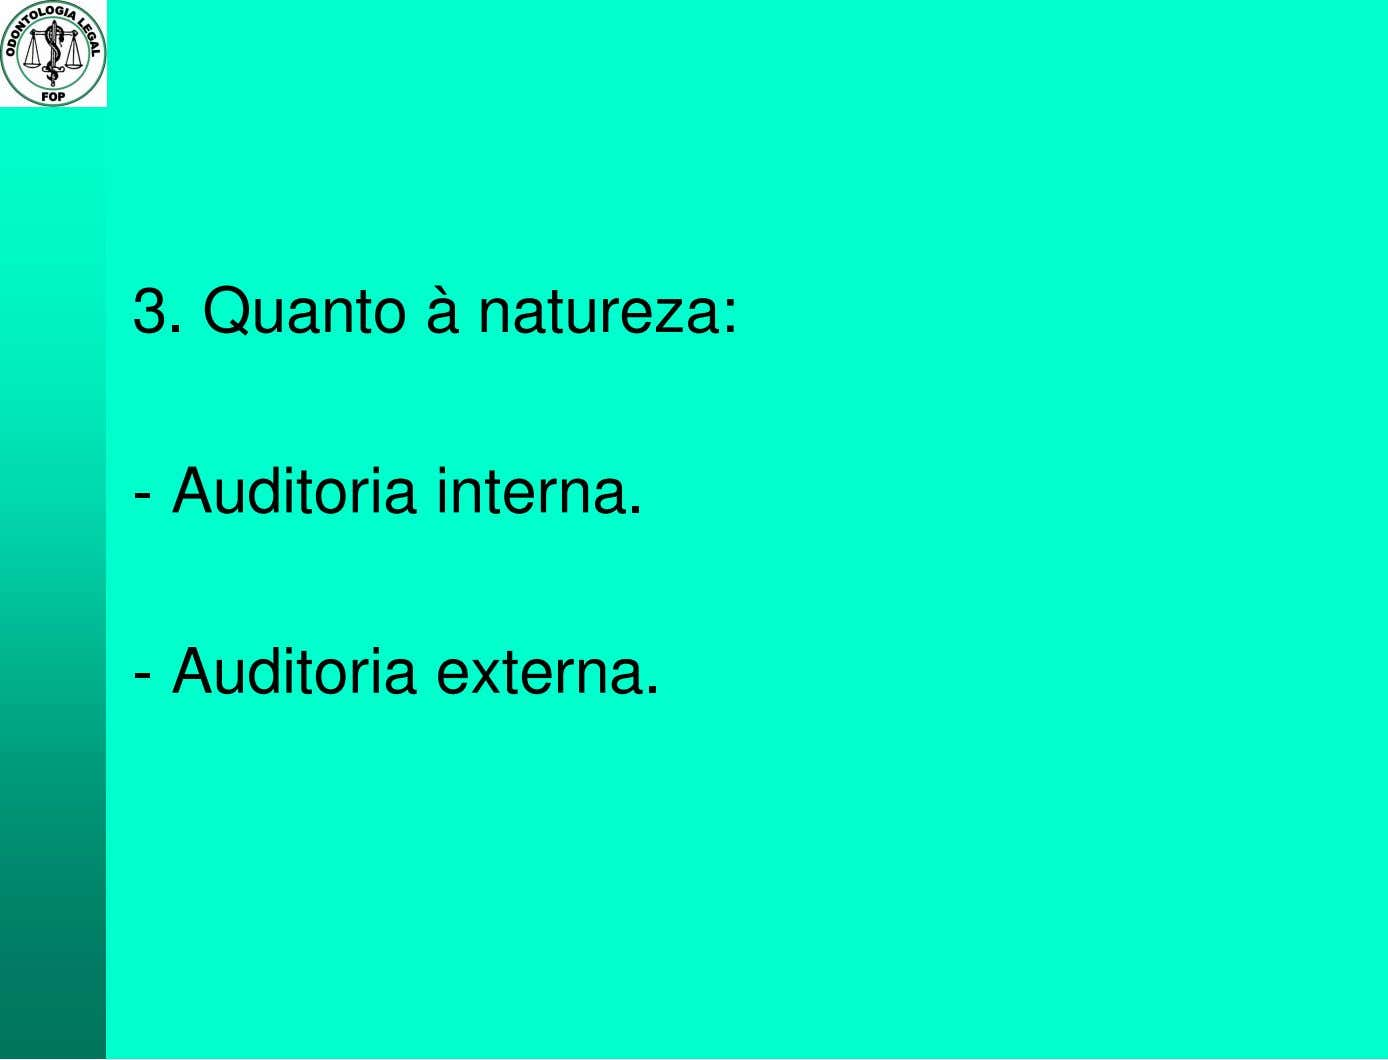 3. Quanto à natureza: - Auditoria interna. - Auditoria externa.